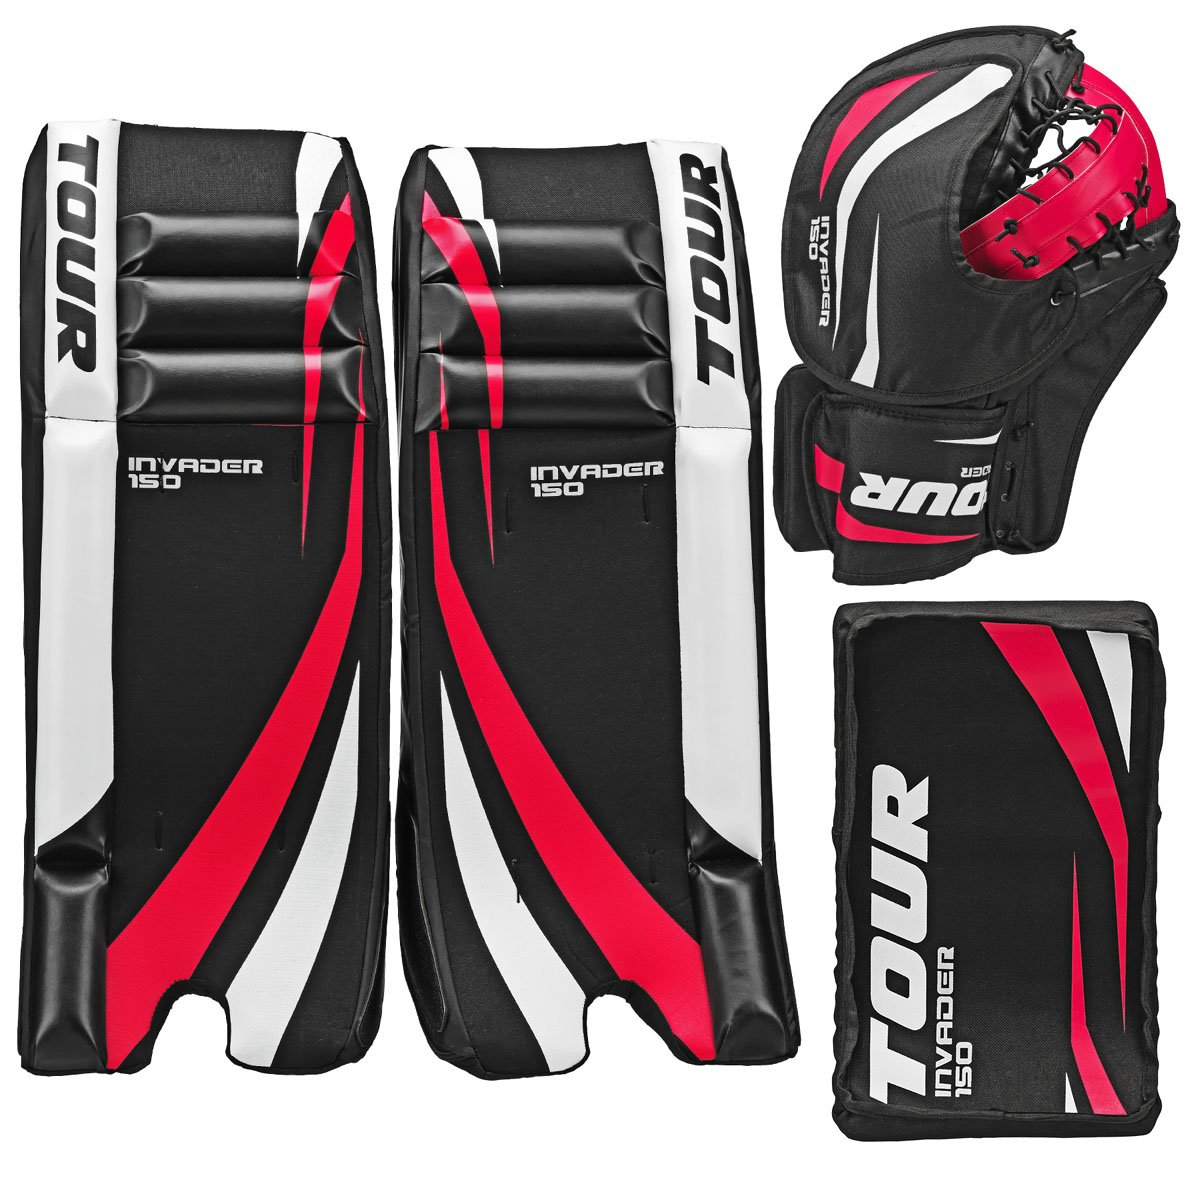 Tour Hockey Youth Invader 150 Hockey Goalie Pad Pack - G105YP (Black-White-Red - 23 Inches)